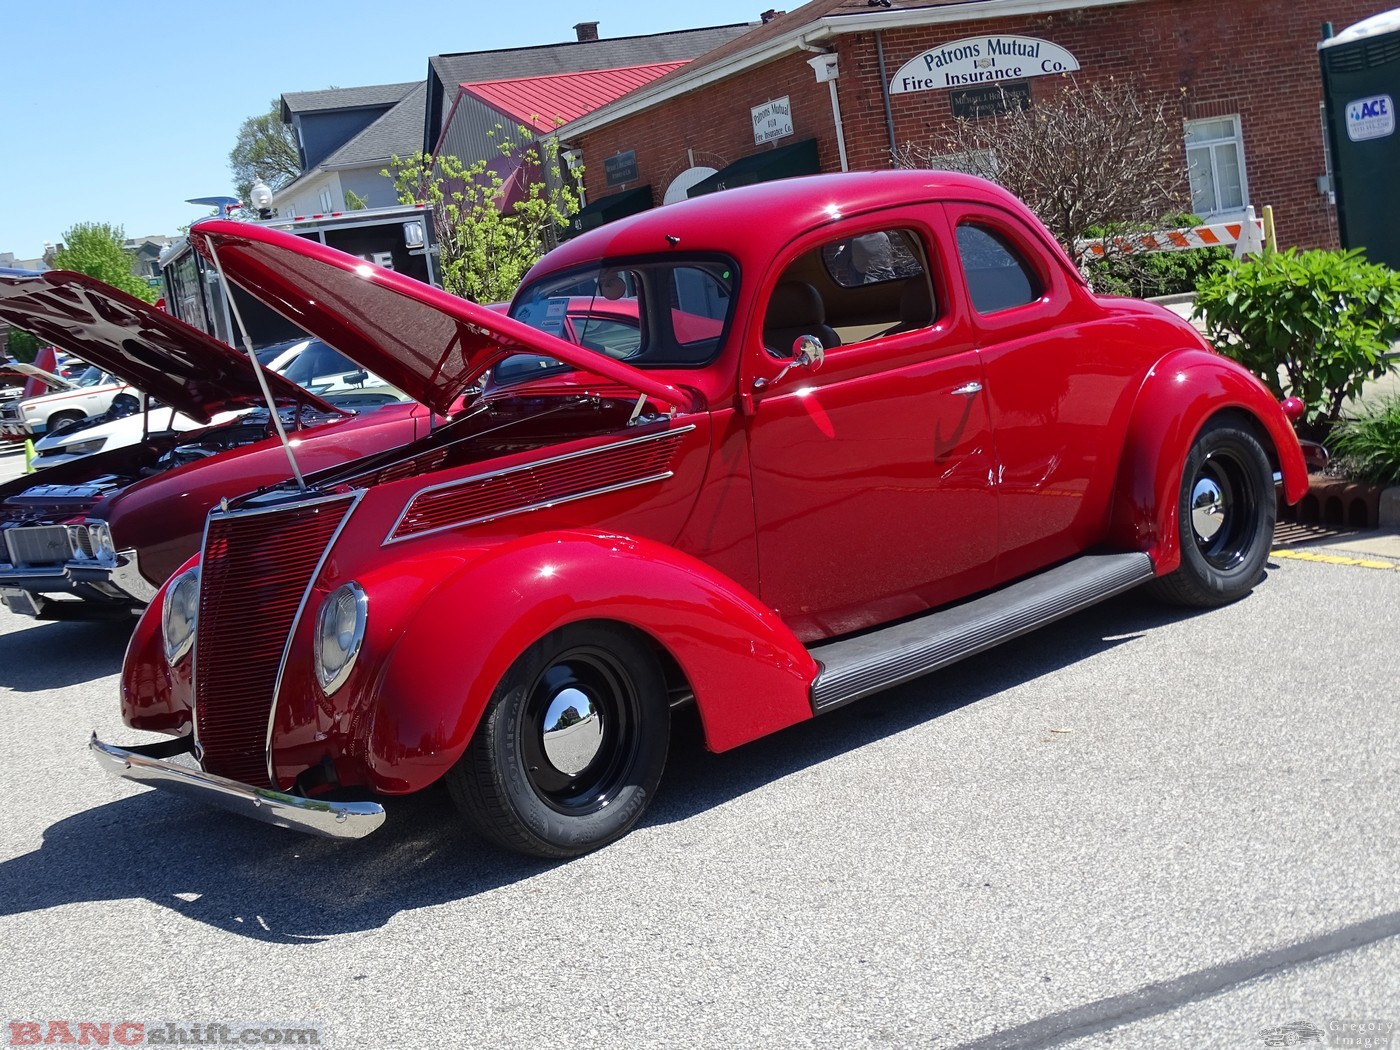 2019 ALS Cruising For A Cure Car Show Coverage: Oldies But Goodies! All Pre-55 Gallery!